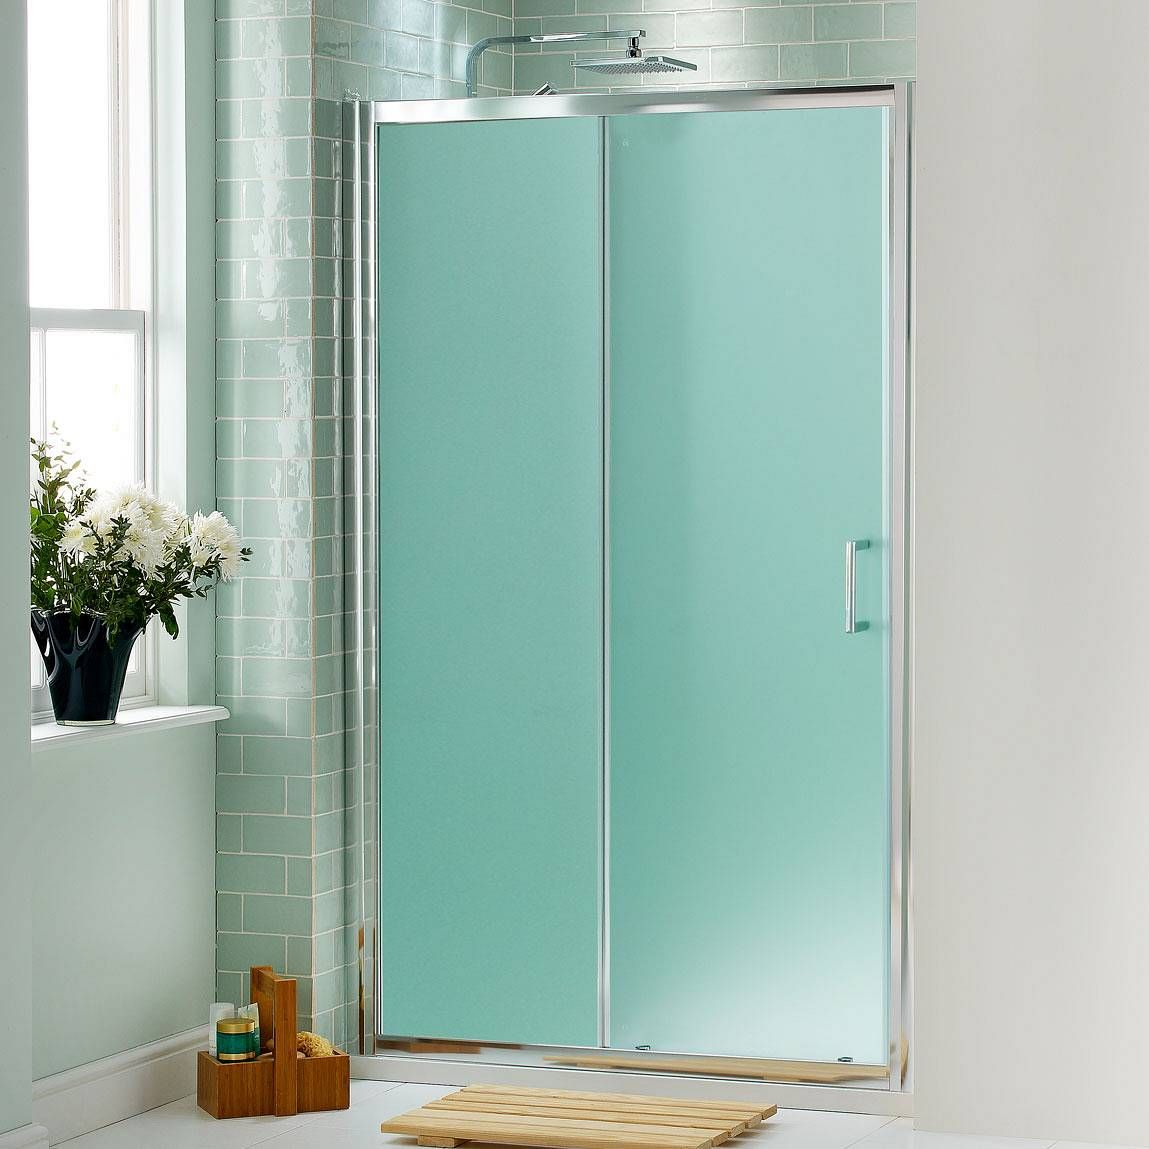 Incredible Frosted Glass Doors Inspirational Home Decor And Glass ...